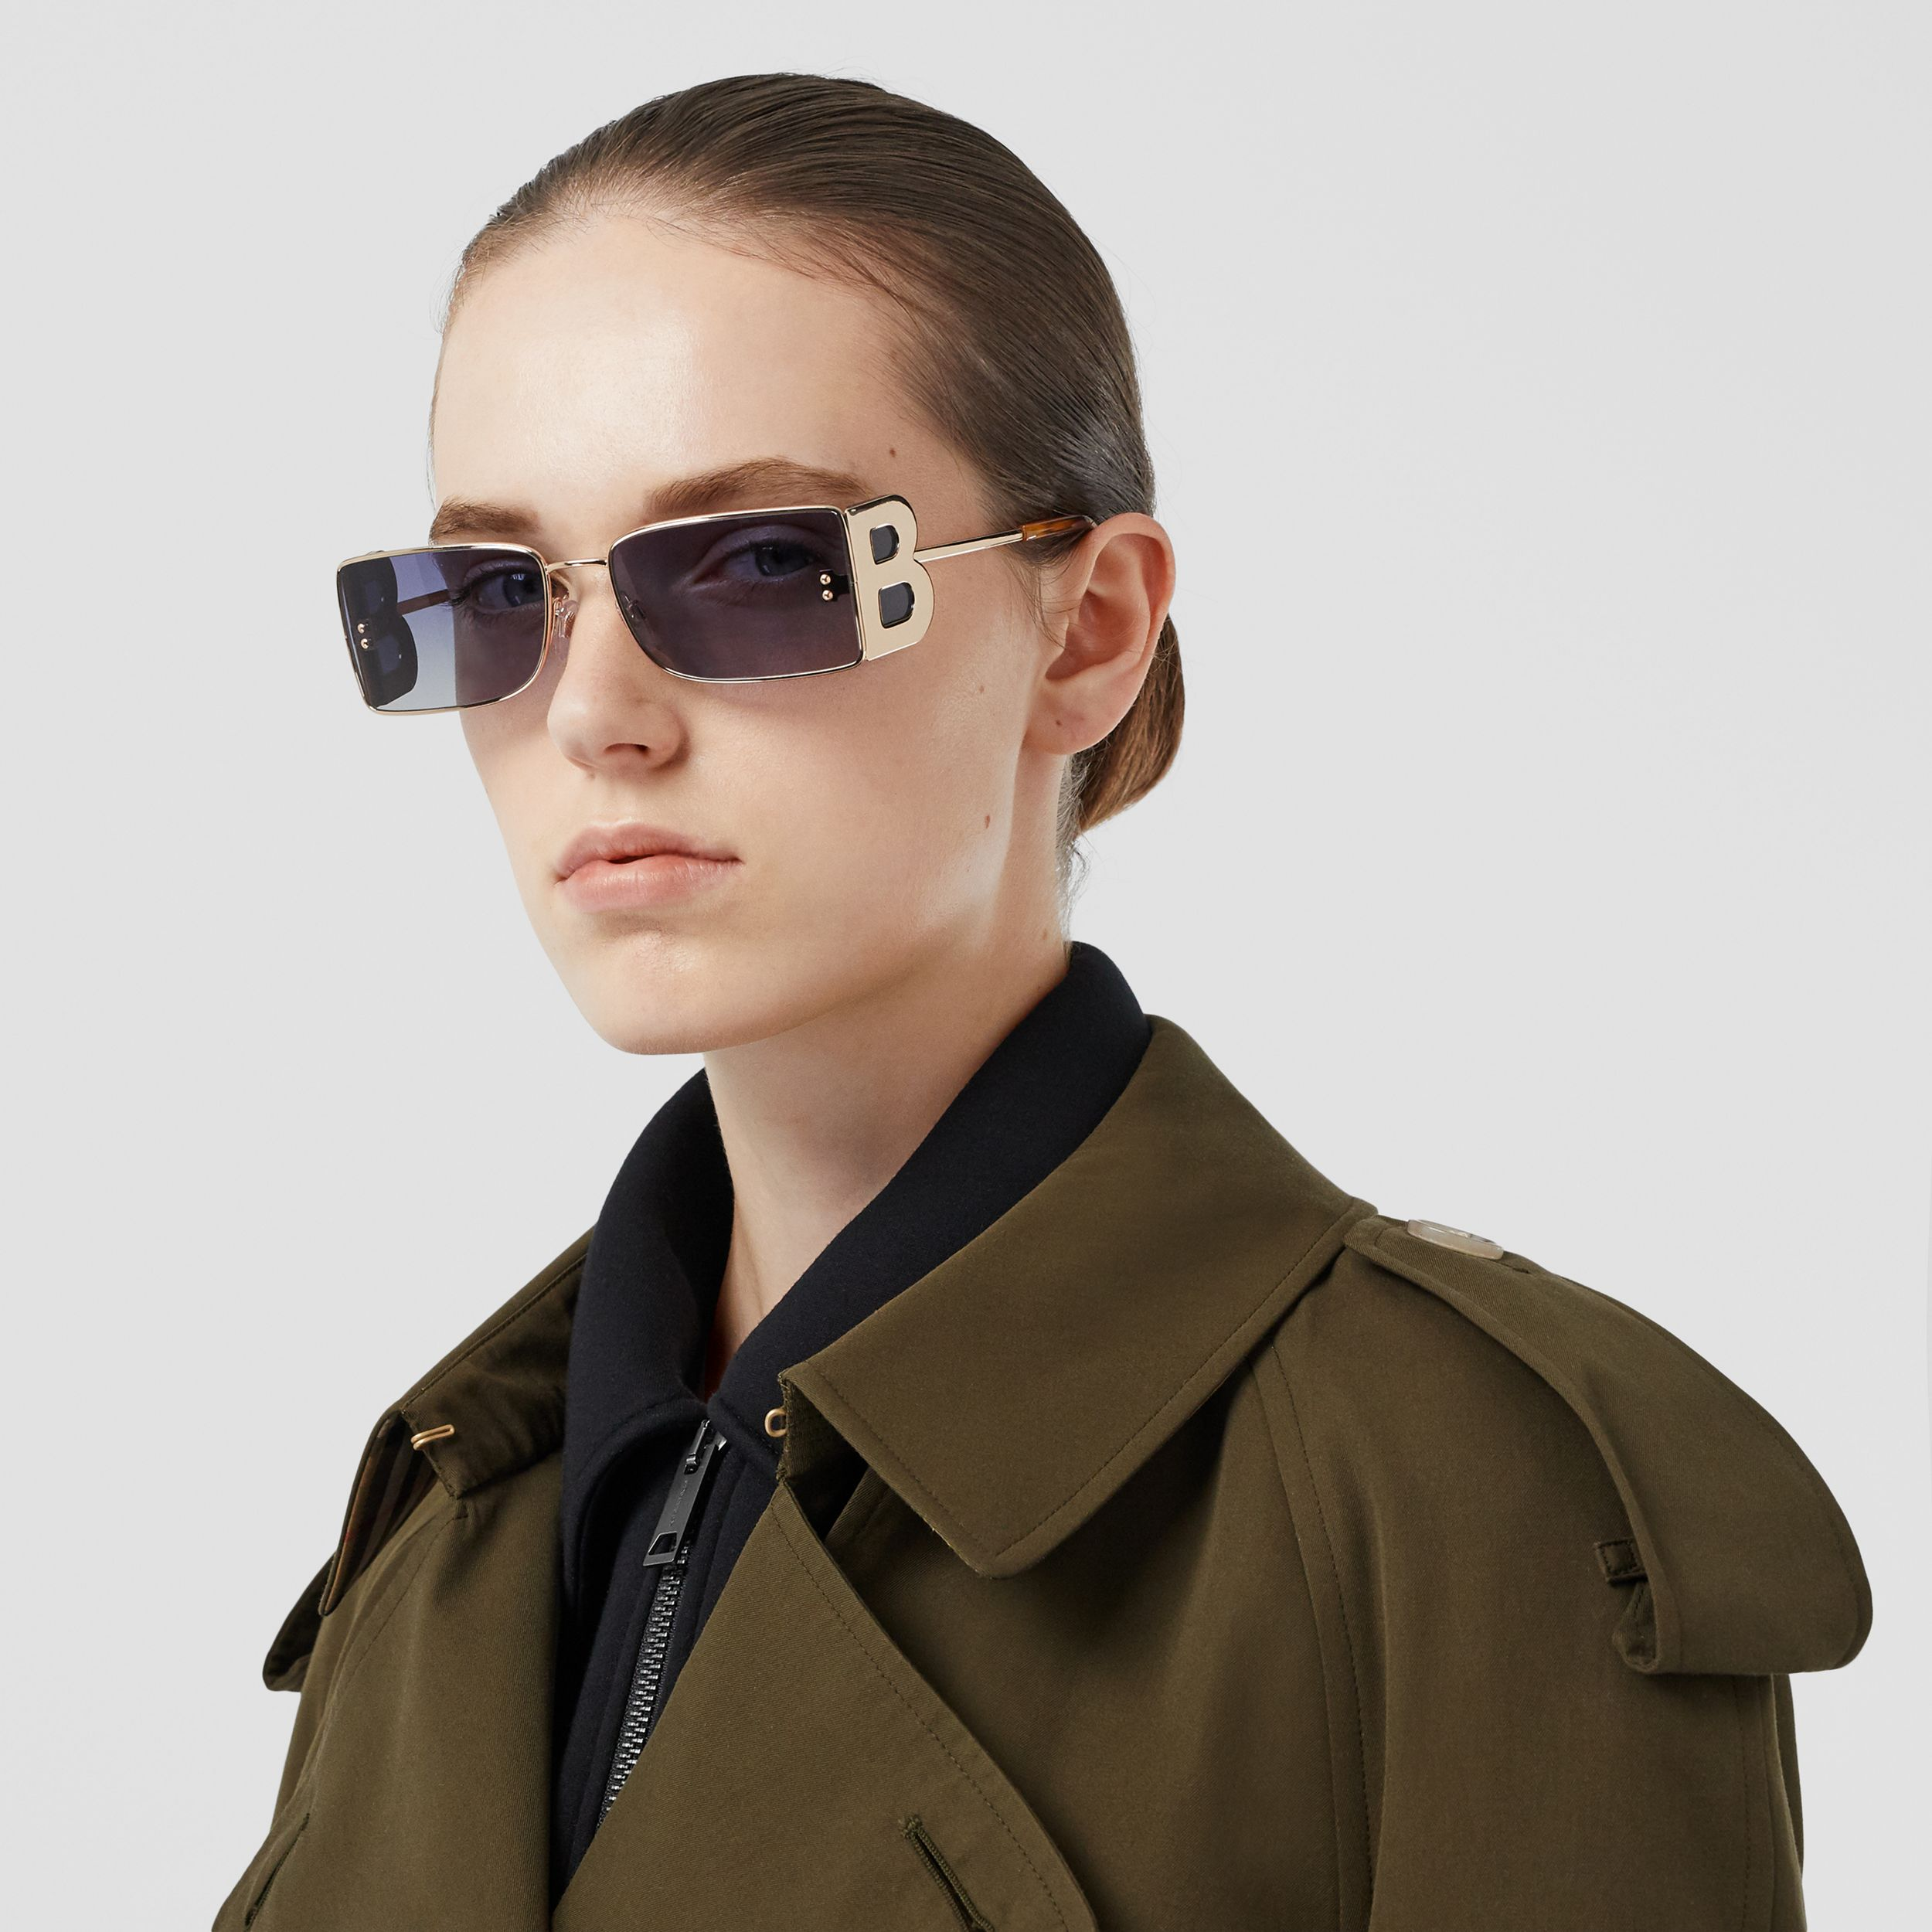 The Long Westminster Heritage Trench Coat in Dark Military Khaki - Women | Burberry - 2